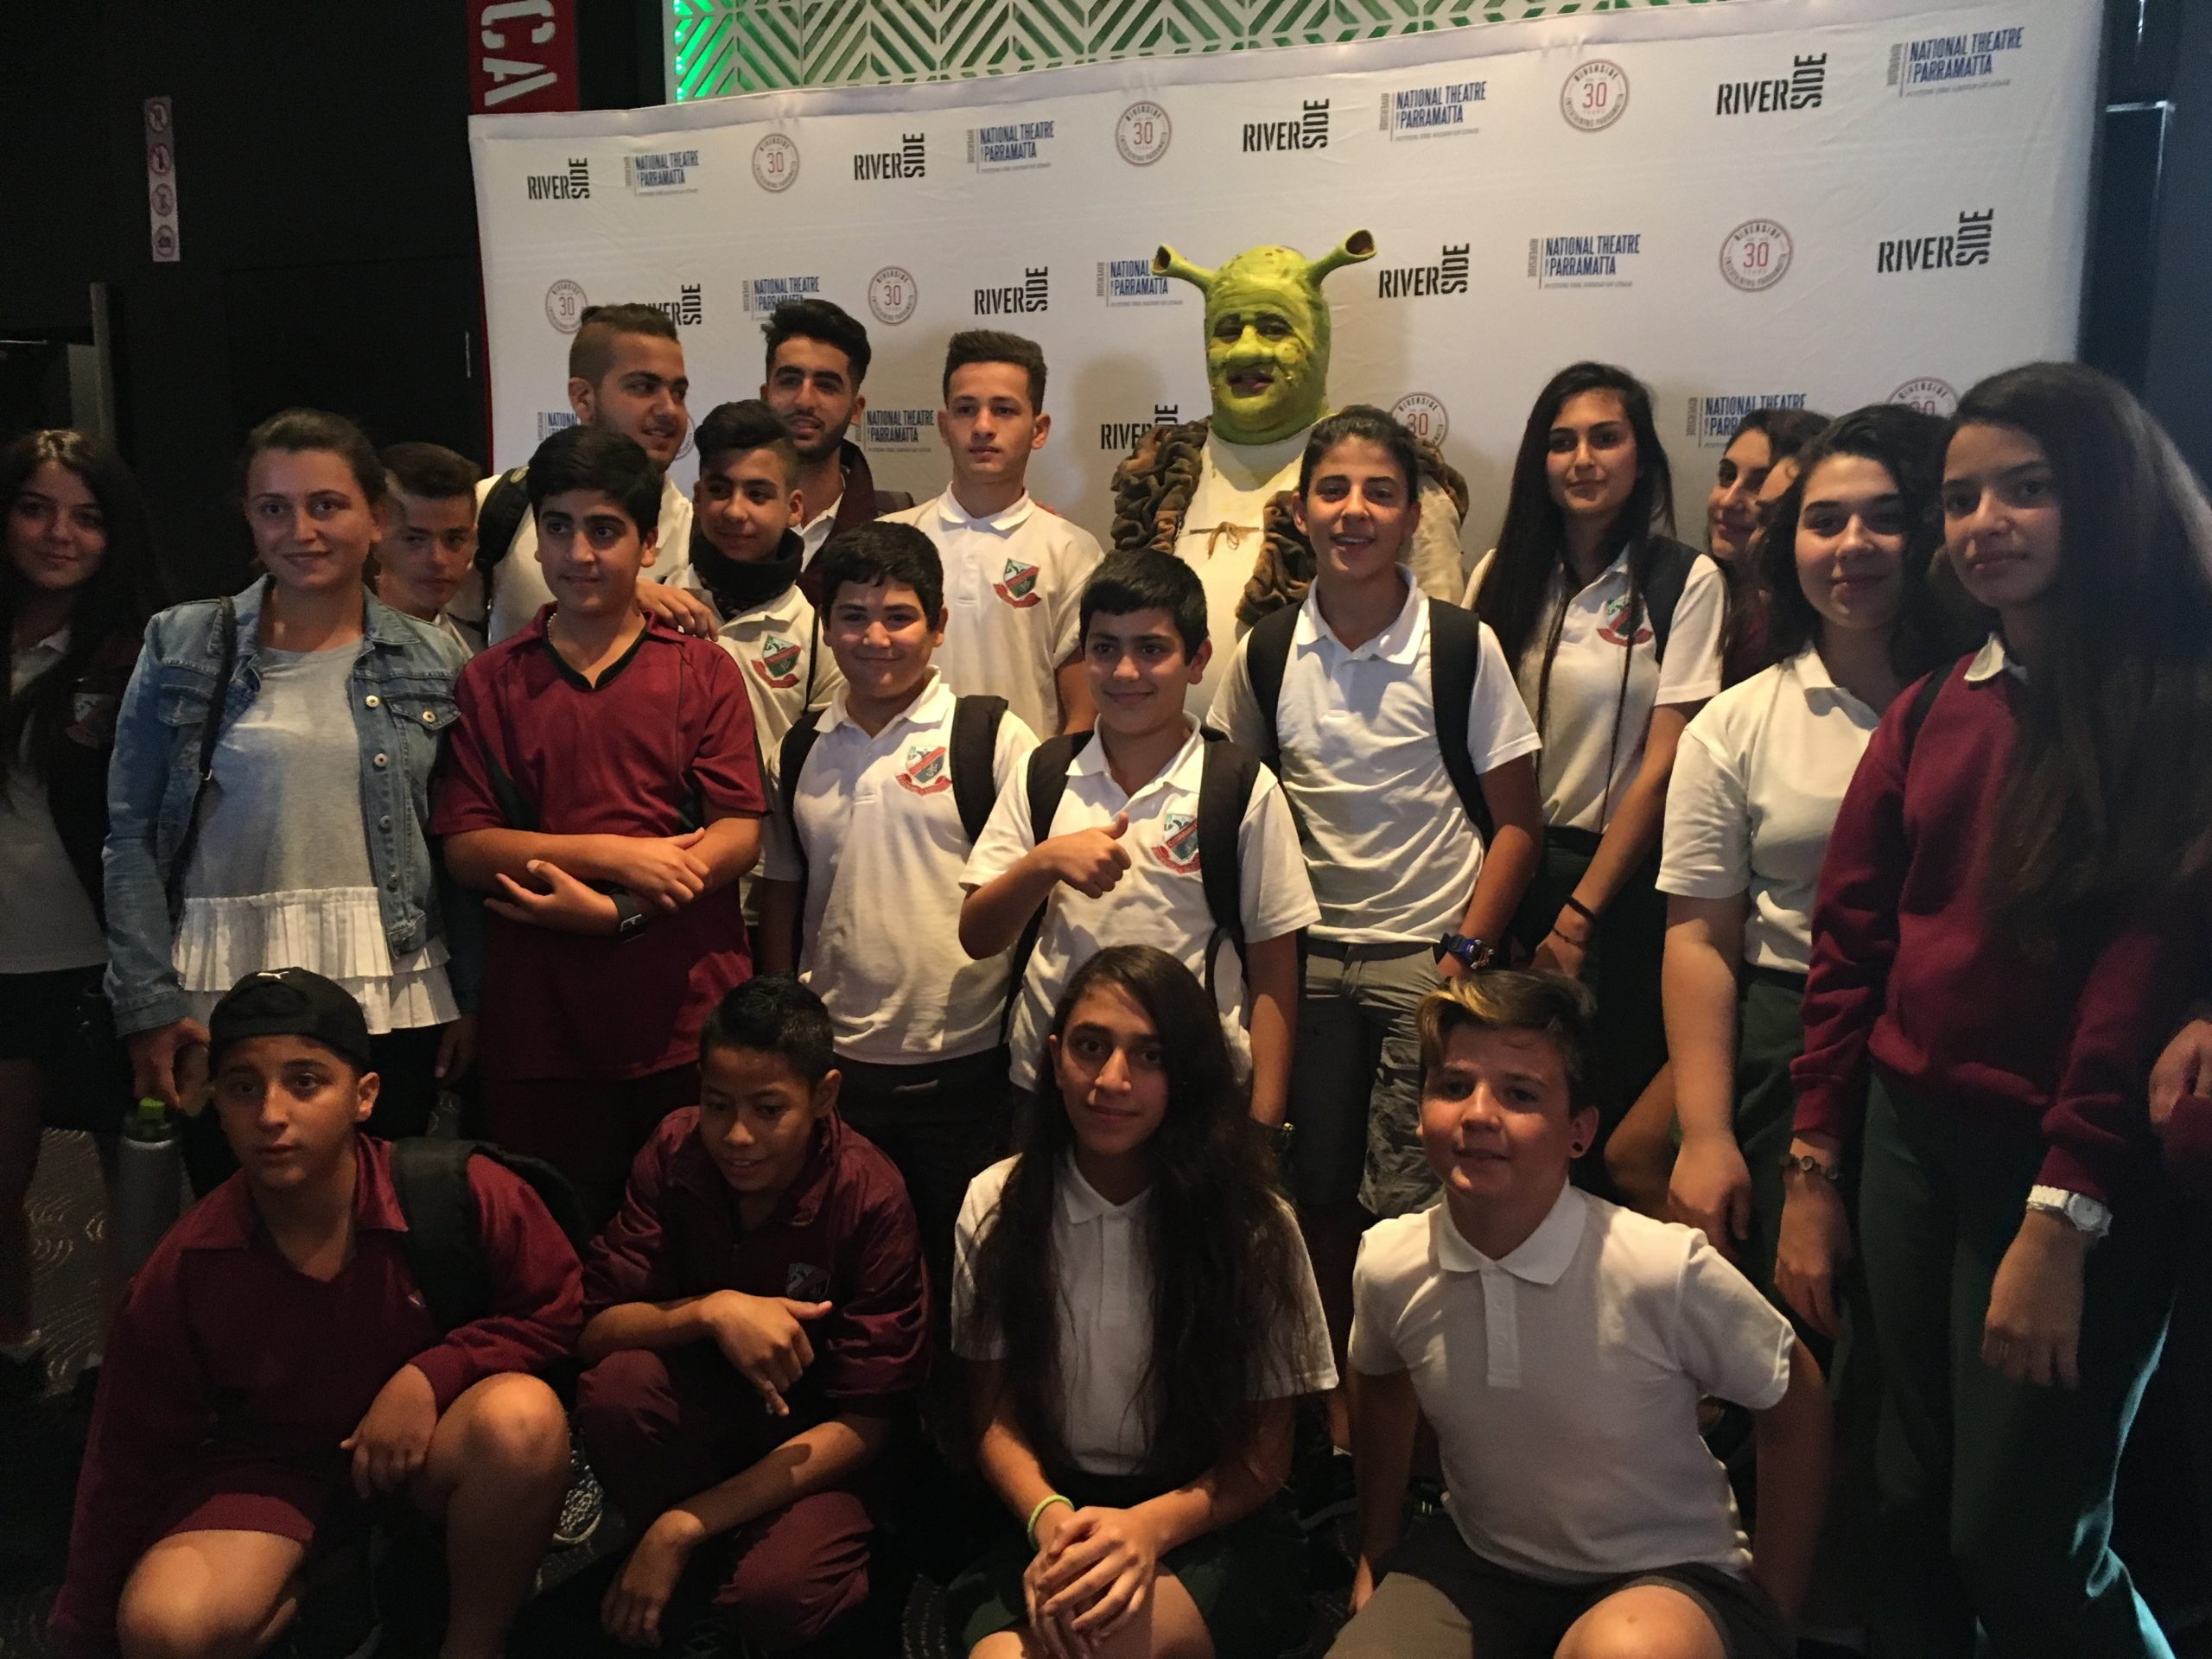 A Big Day Out At Shrek The Musical Premiere